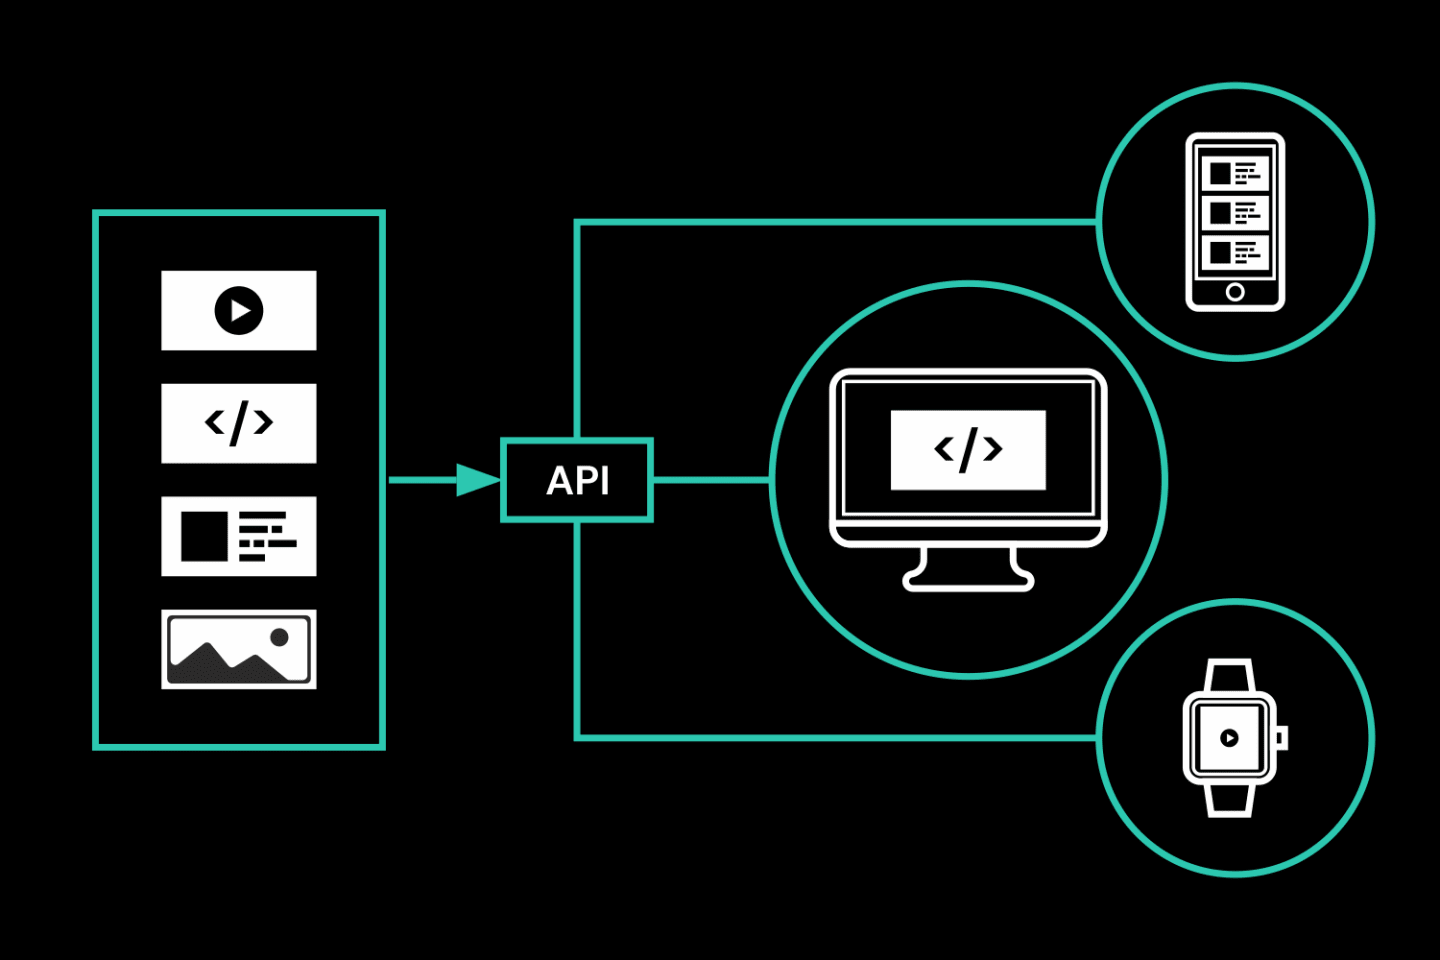 A flow diagram shows the flow of content from the CMS, through an API, to different display configurations on different devices.